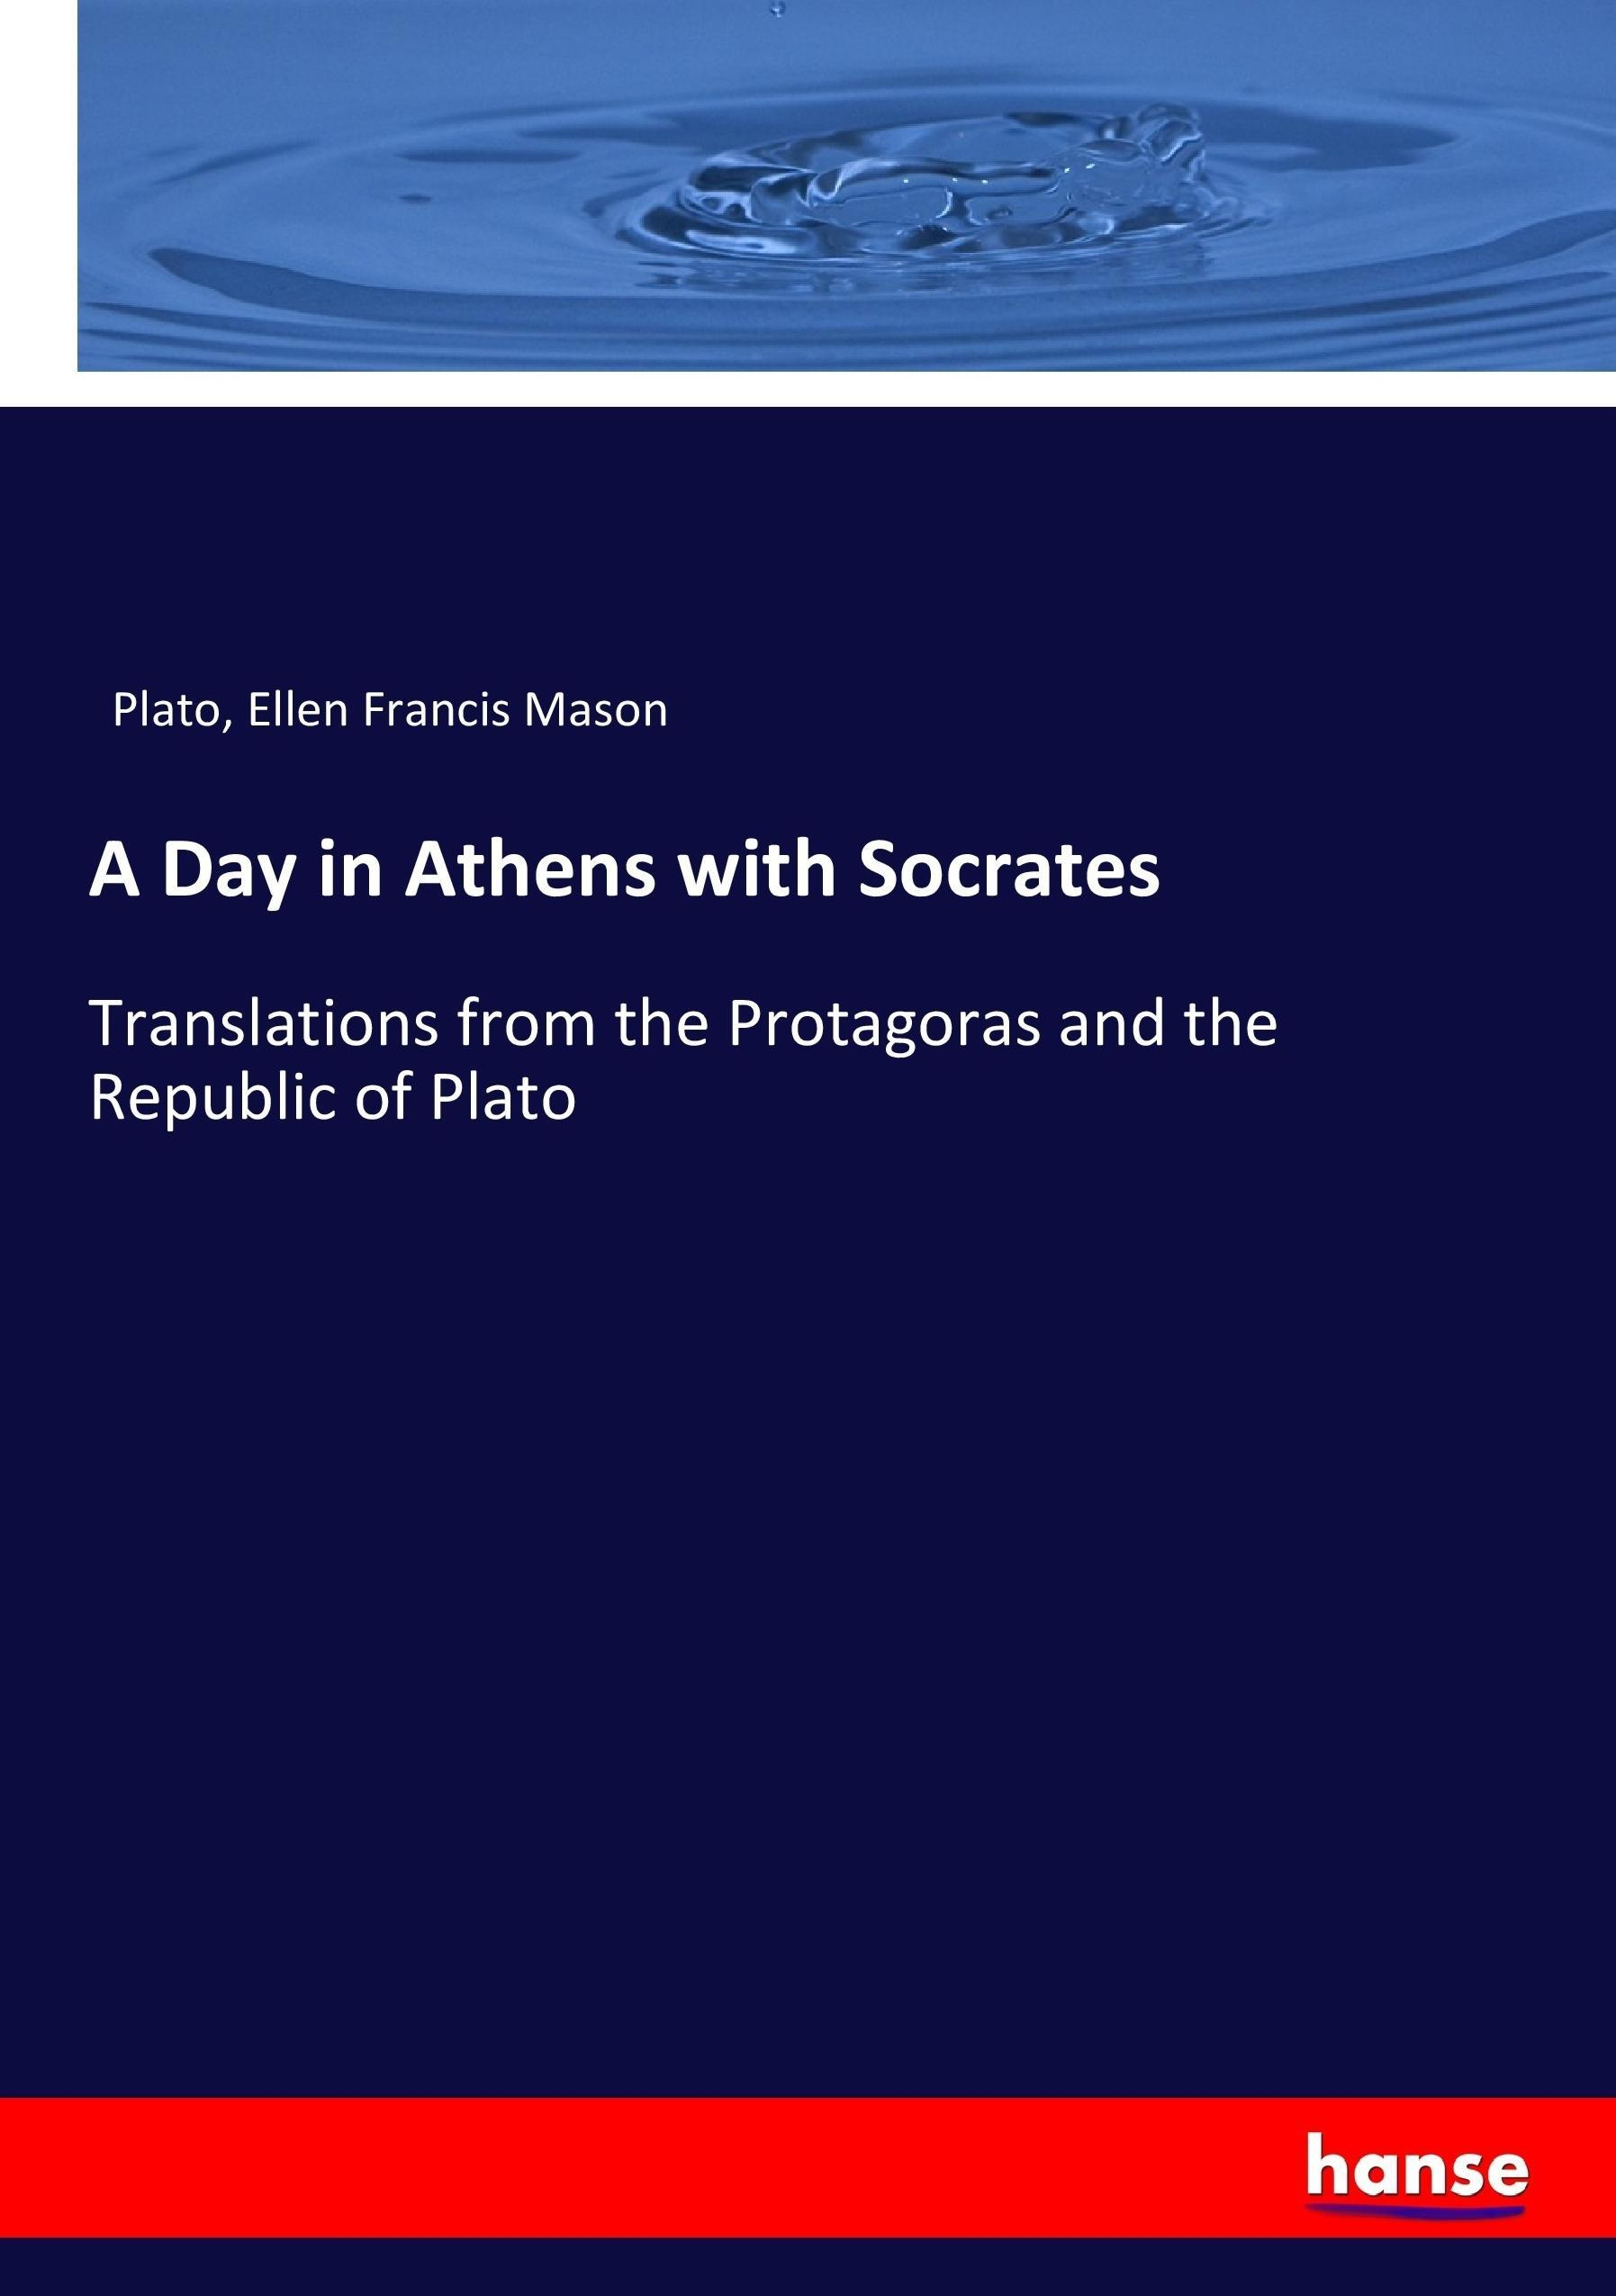 A-Day-in-Athens-with-Socrates-Plato